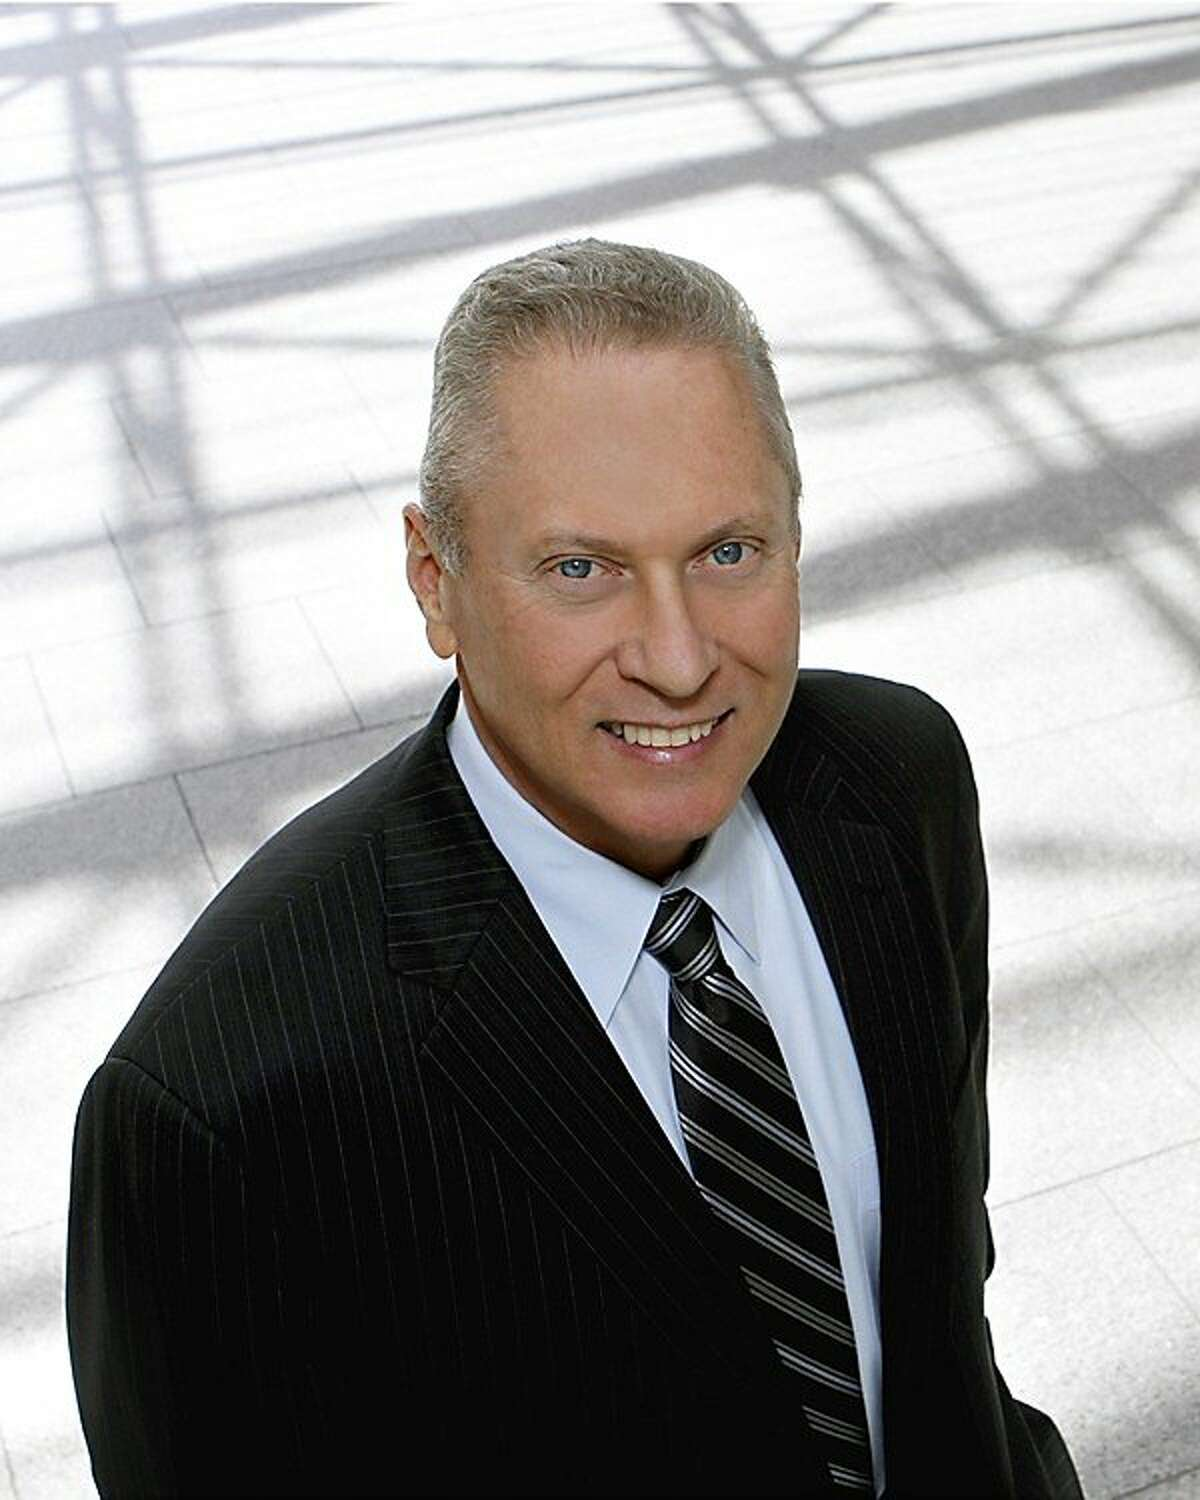 Terry Calaway, 57, recently retired as president of Johnson County Community College in Overland Park, Kansas.